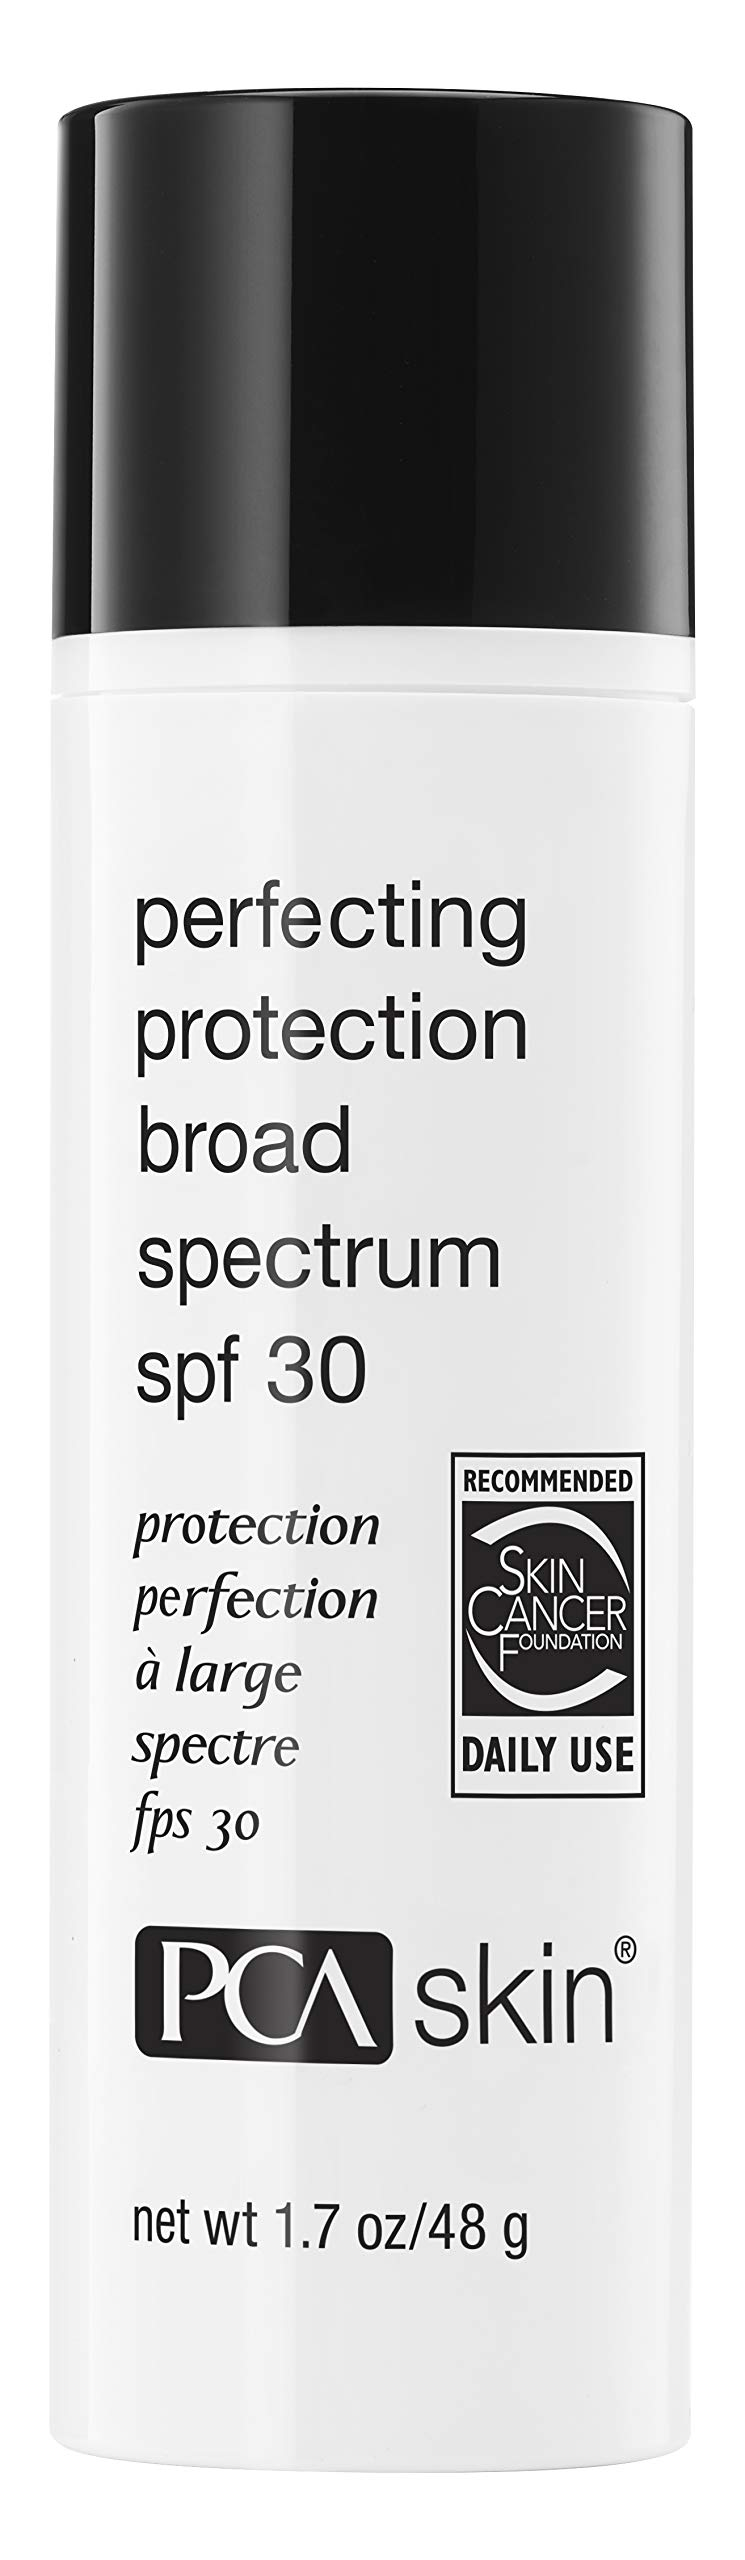 PCA SKIN Perfecting Protection Broad Spectrum SPF 30, Antioxidant Daily Facial Sunscreen for Even Skintone, UVA/UVB Protection, 1.7 oz